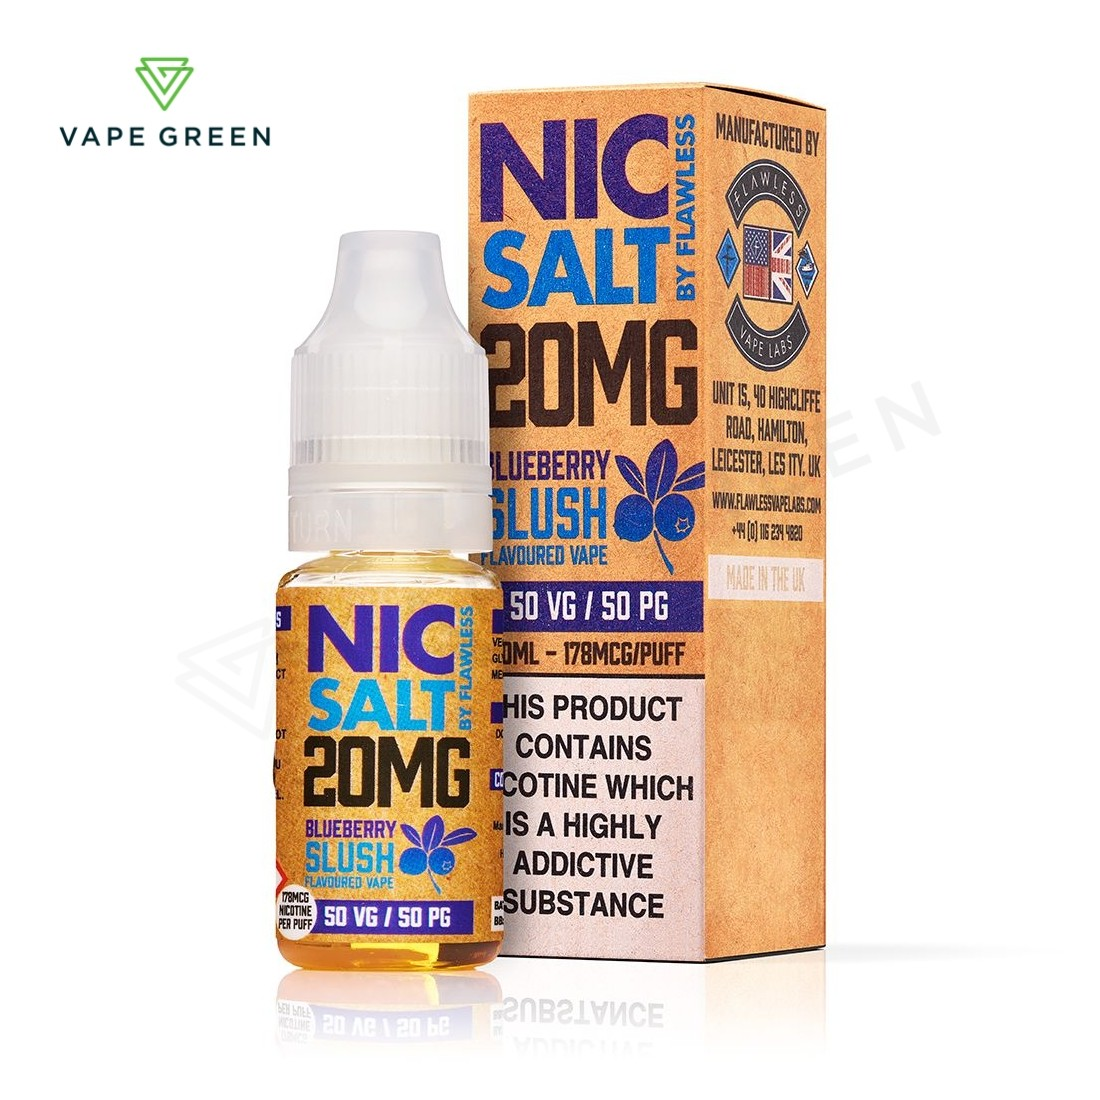 Bluberry Slush eLiquid by Flawless Nic Salt - 20mg